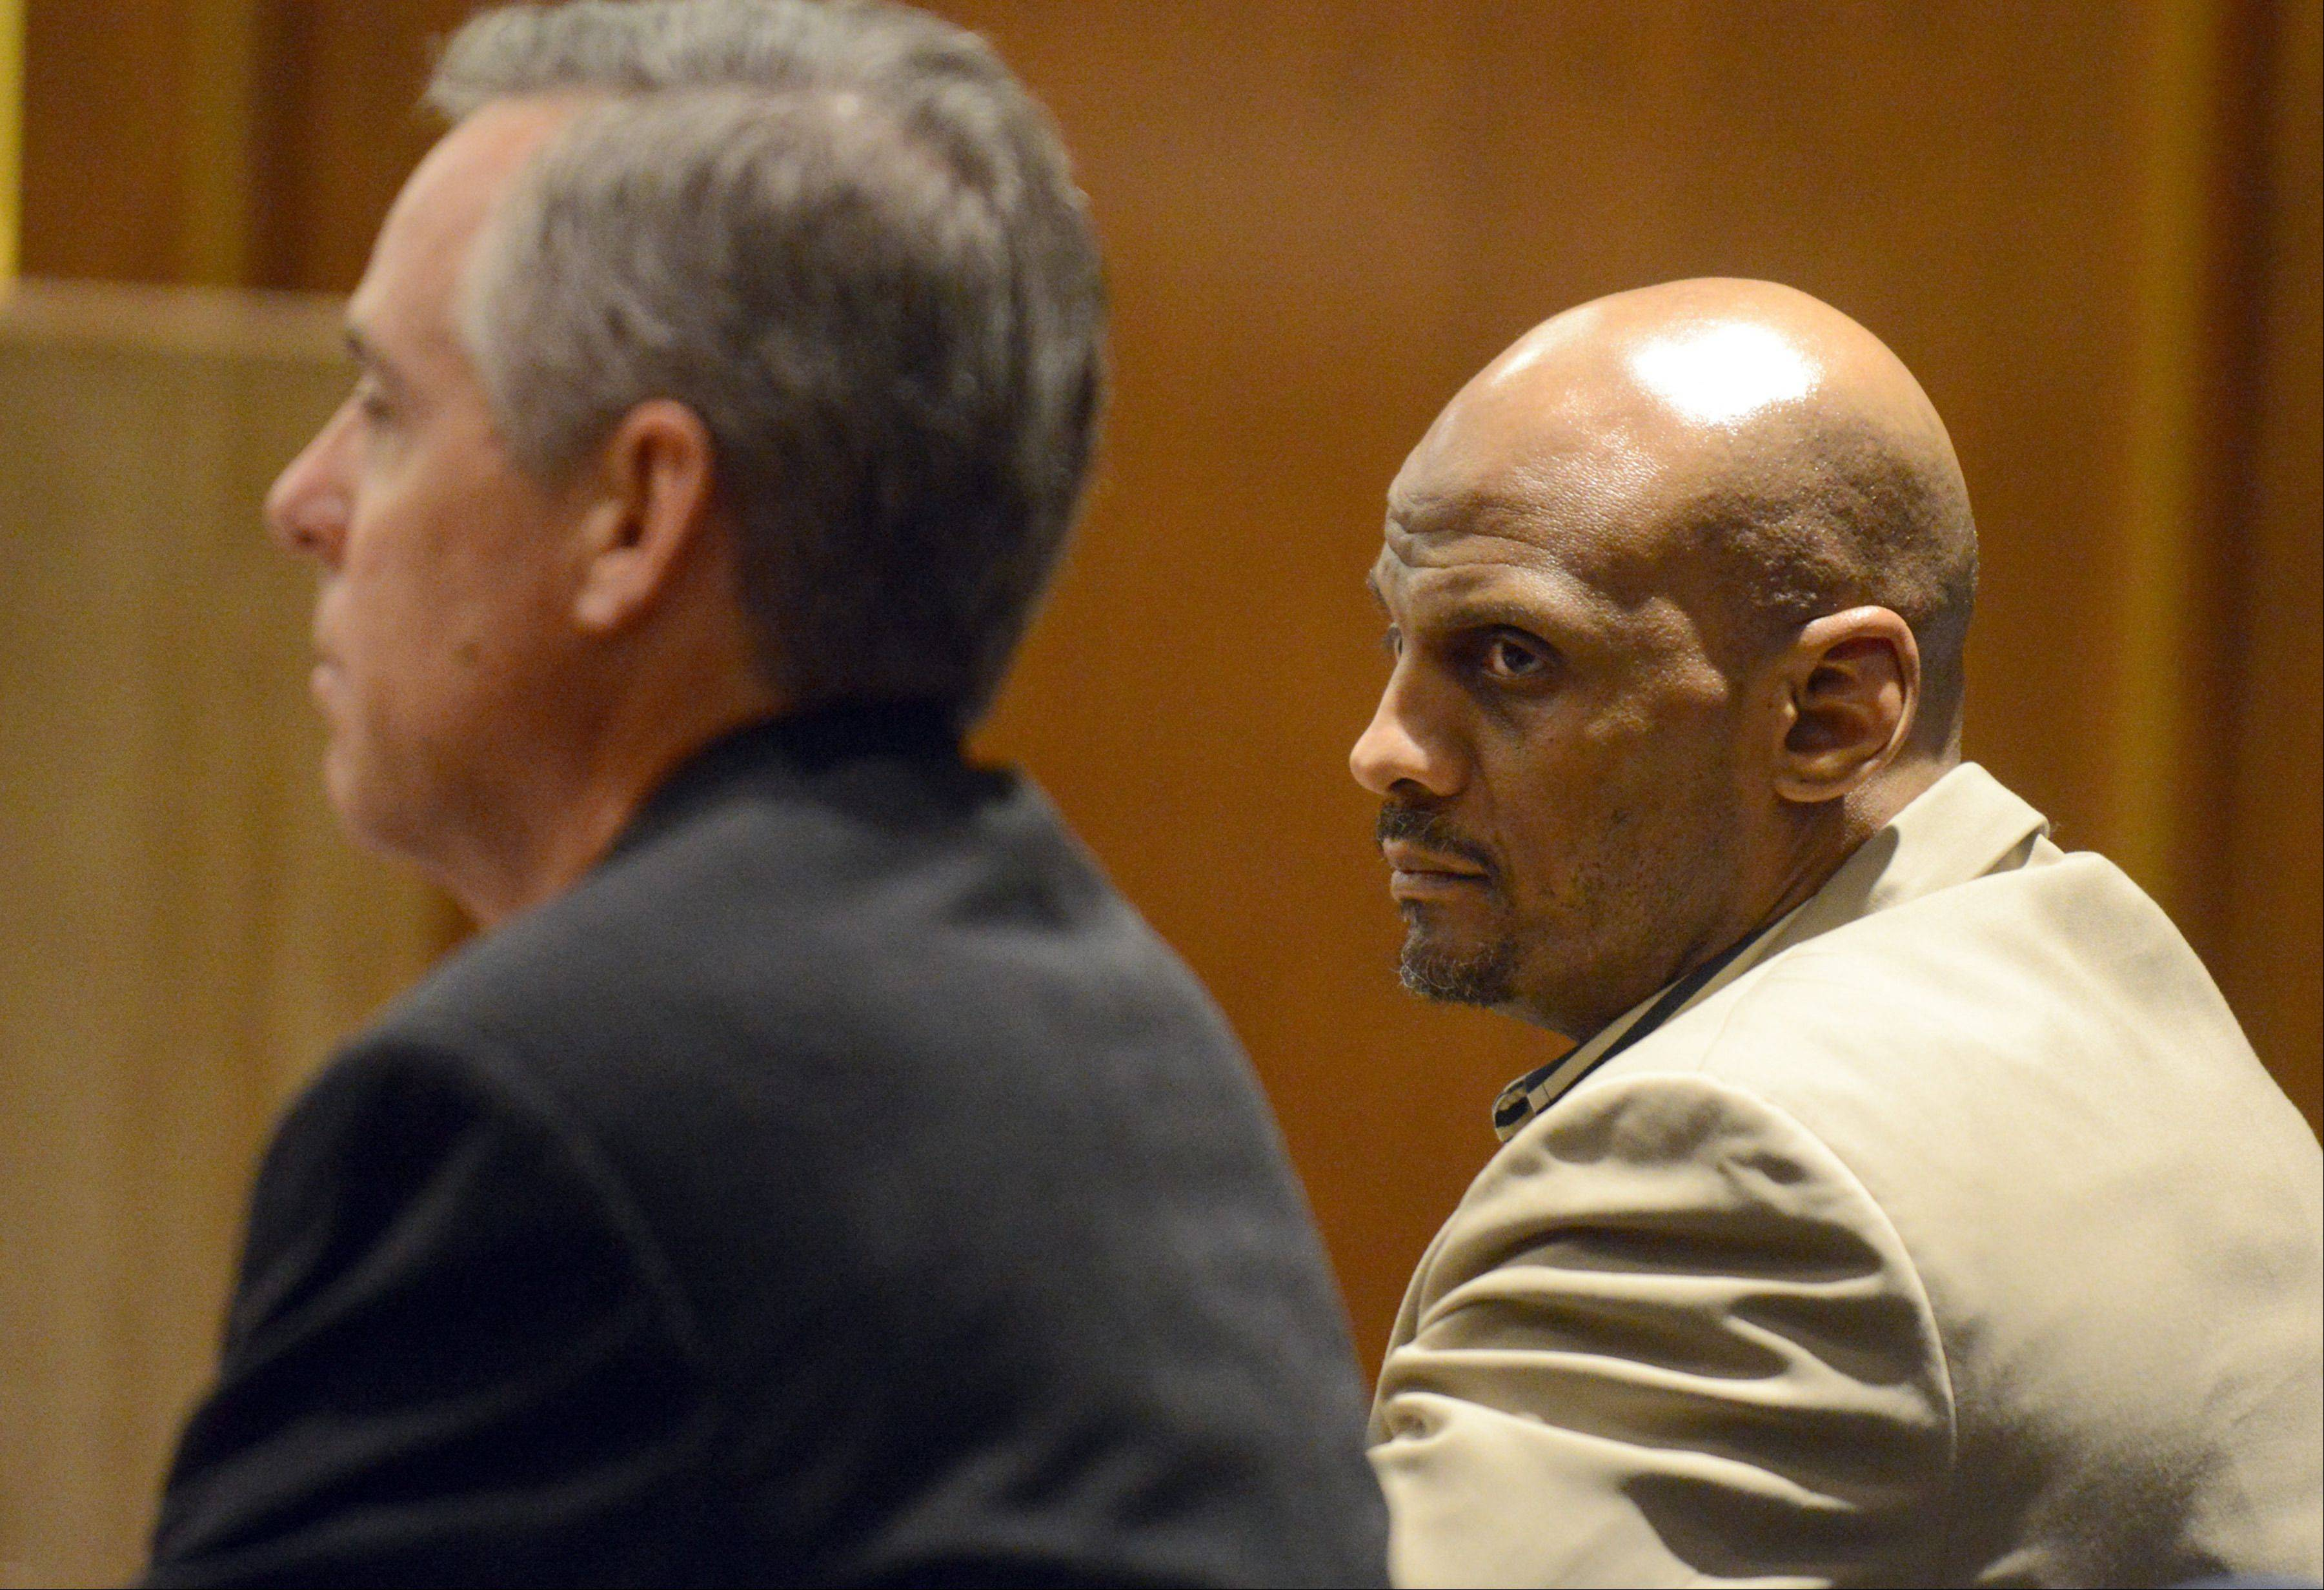 James Ealy 48, of Lake Villa sits next to his attorney, public defender Keith Grant, as the verdict is read and he is found guilty of first-degree murder in the strangulation of Mary Hutchison of Trevor, Wis., during a robbery at the Burger King in Lindenhurst on Nov. 27, 2006.